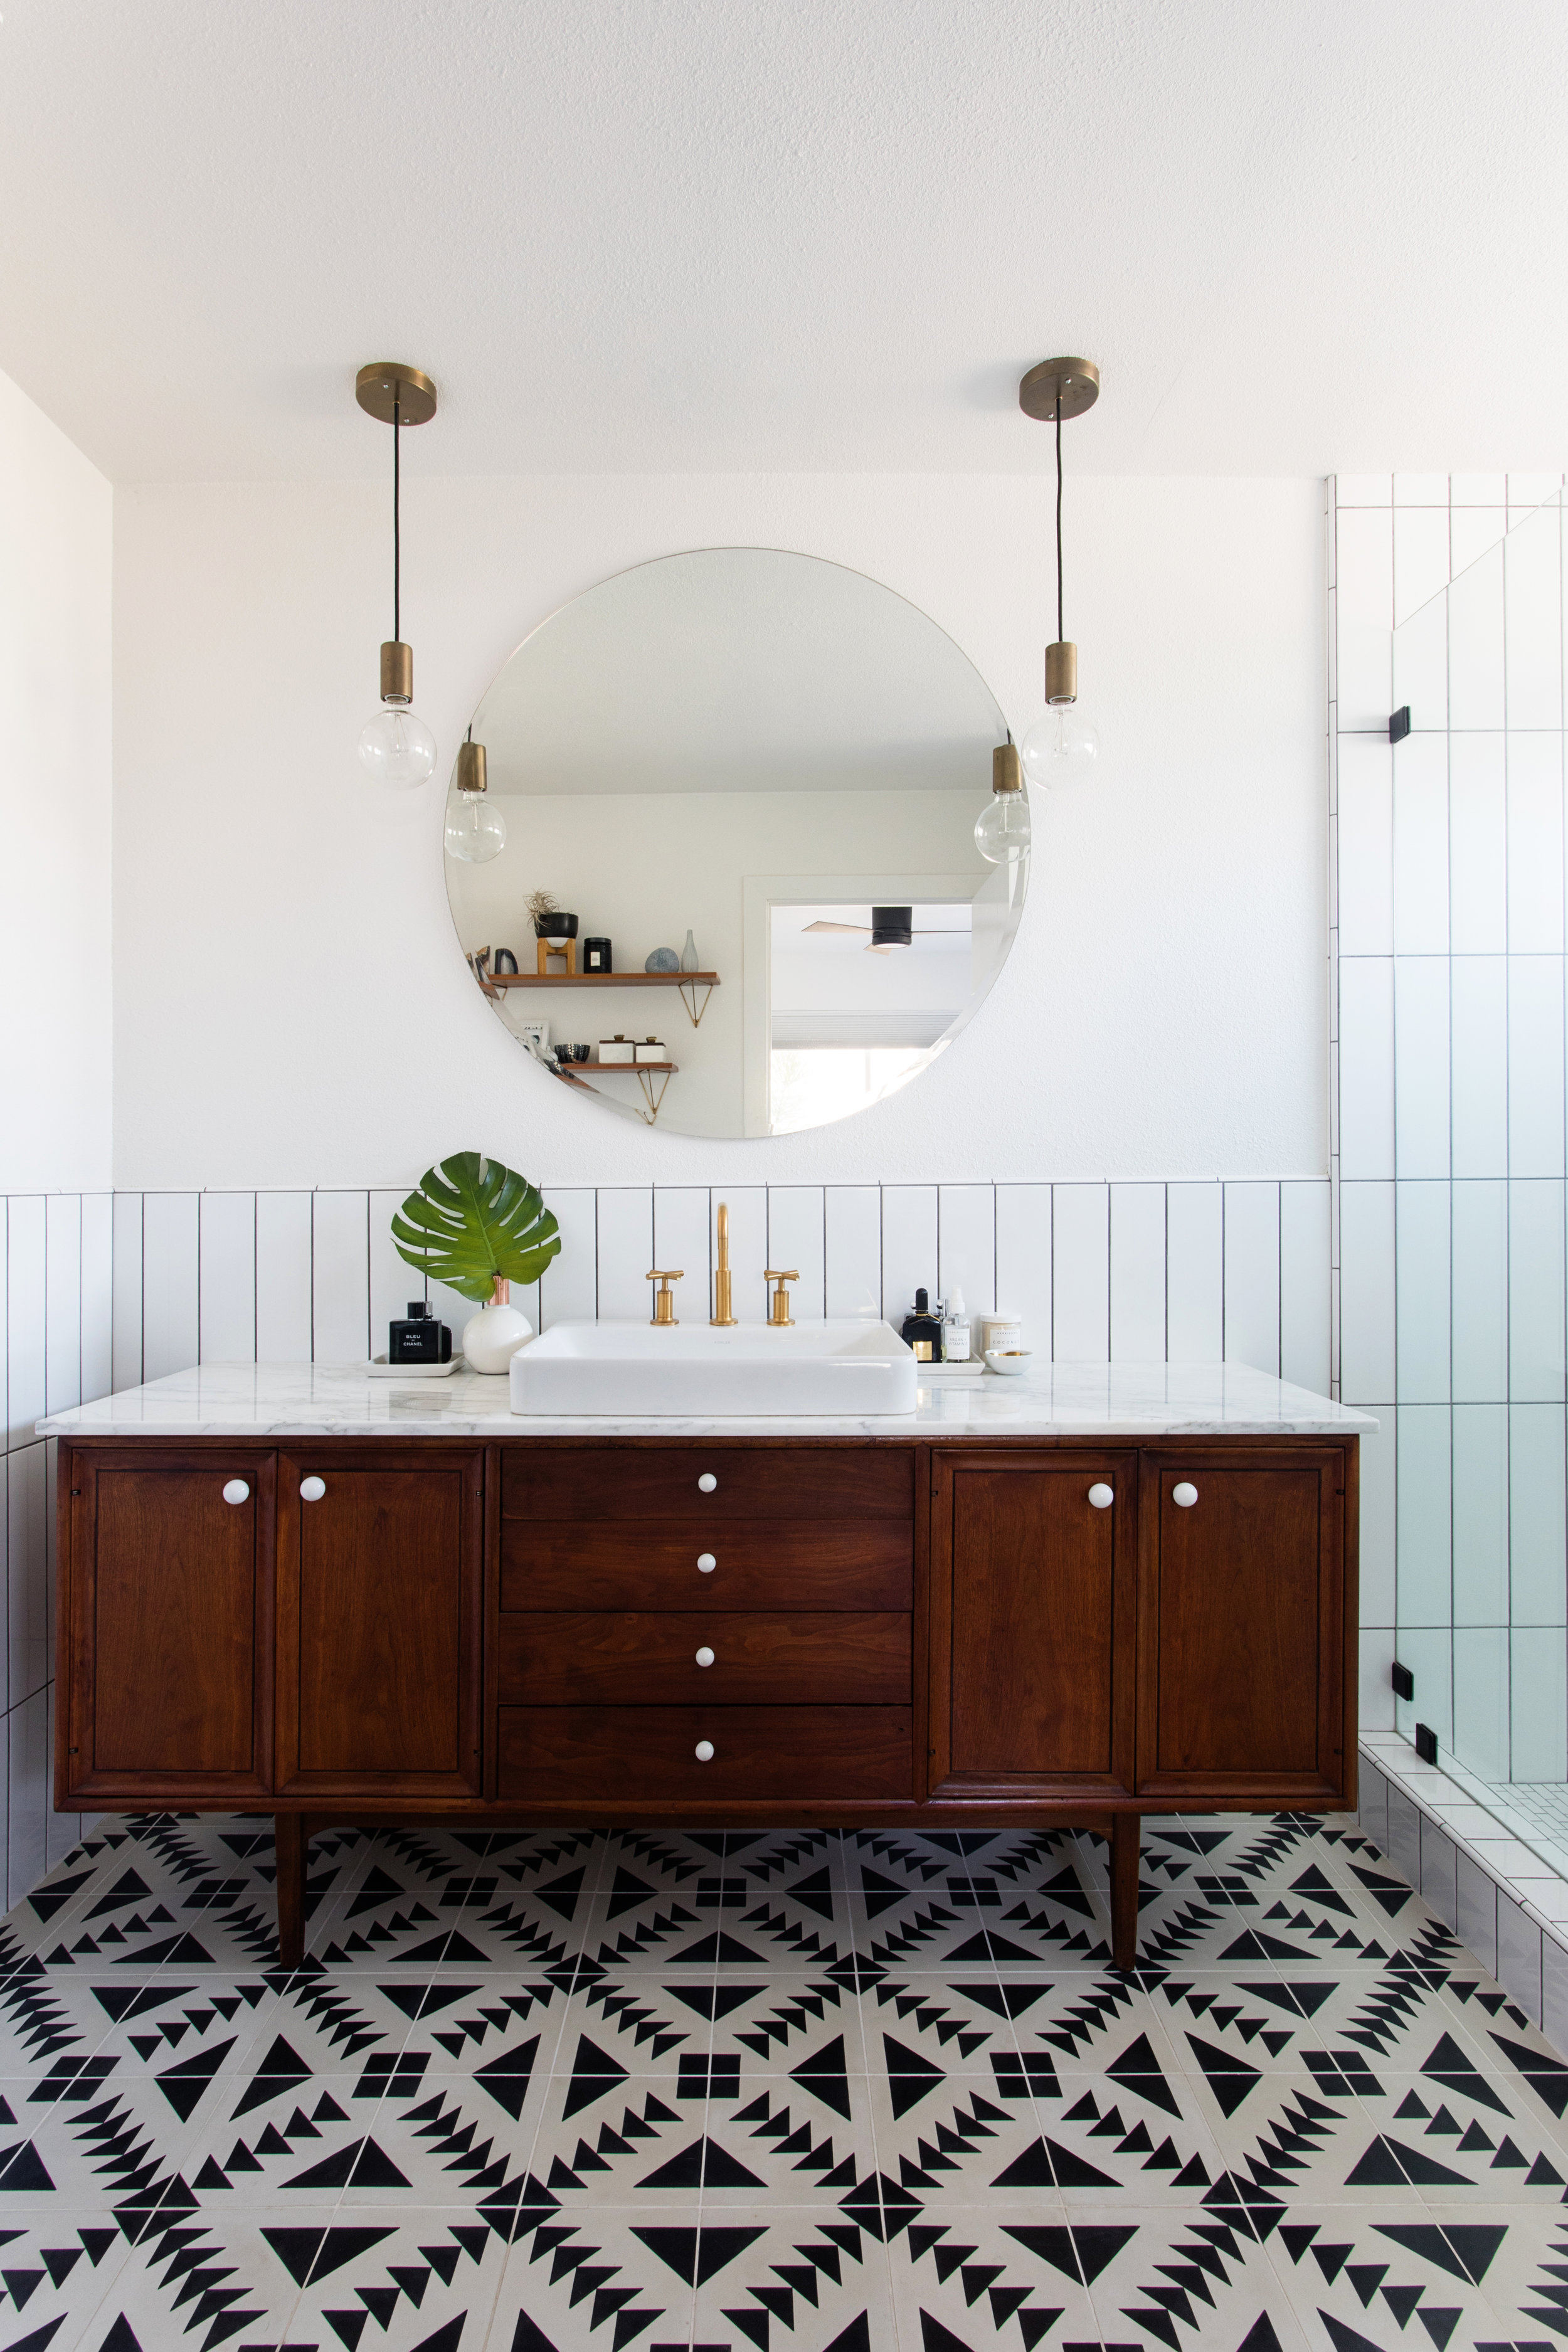 A MID CENTURY INSPIRED BATHROOM RENOVATION